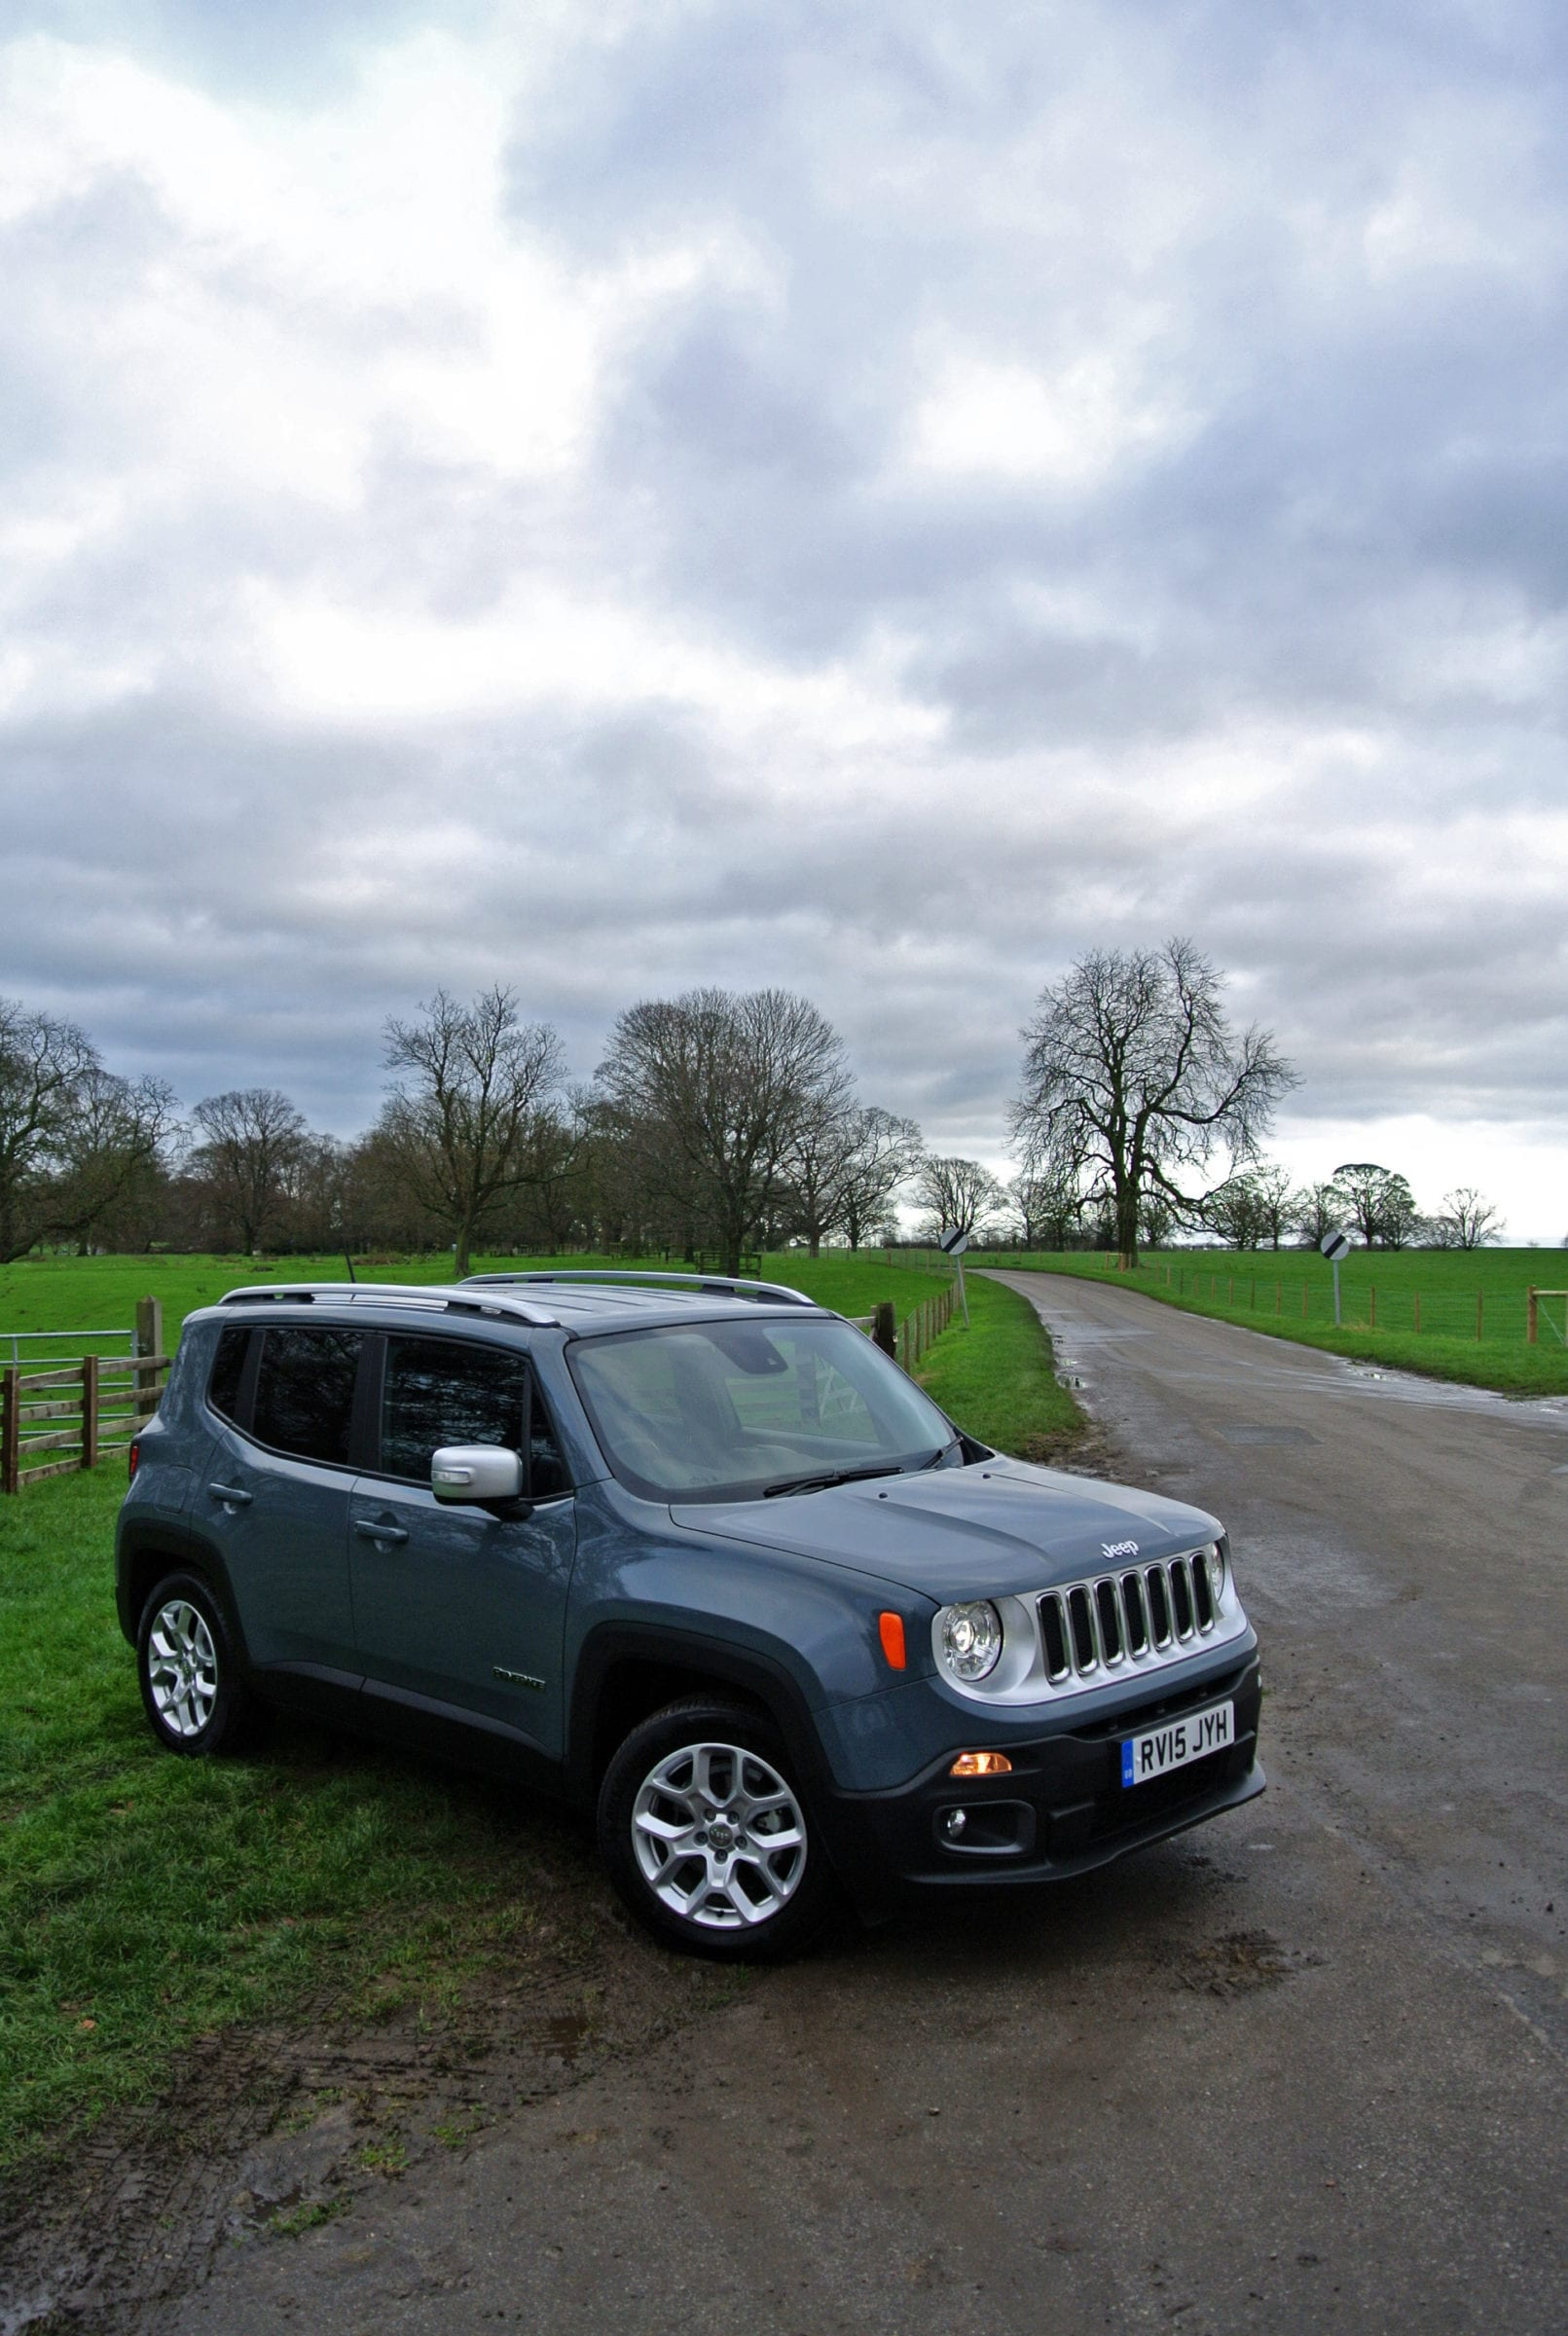 main magazine choice n from the styling that a renegade its was clearly fishing new rivals jeep differentiates review unique by img beach smart bush